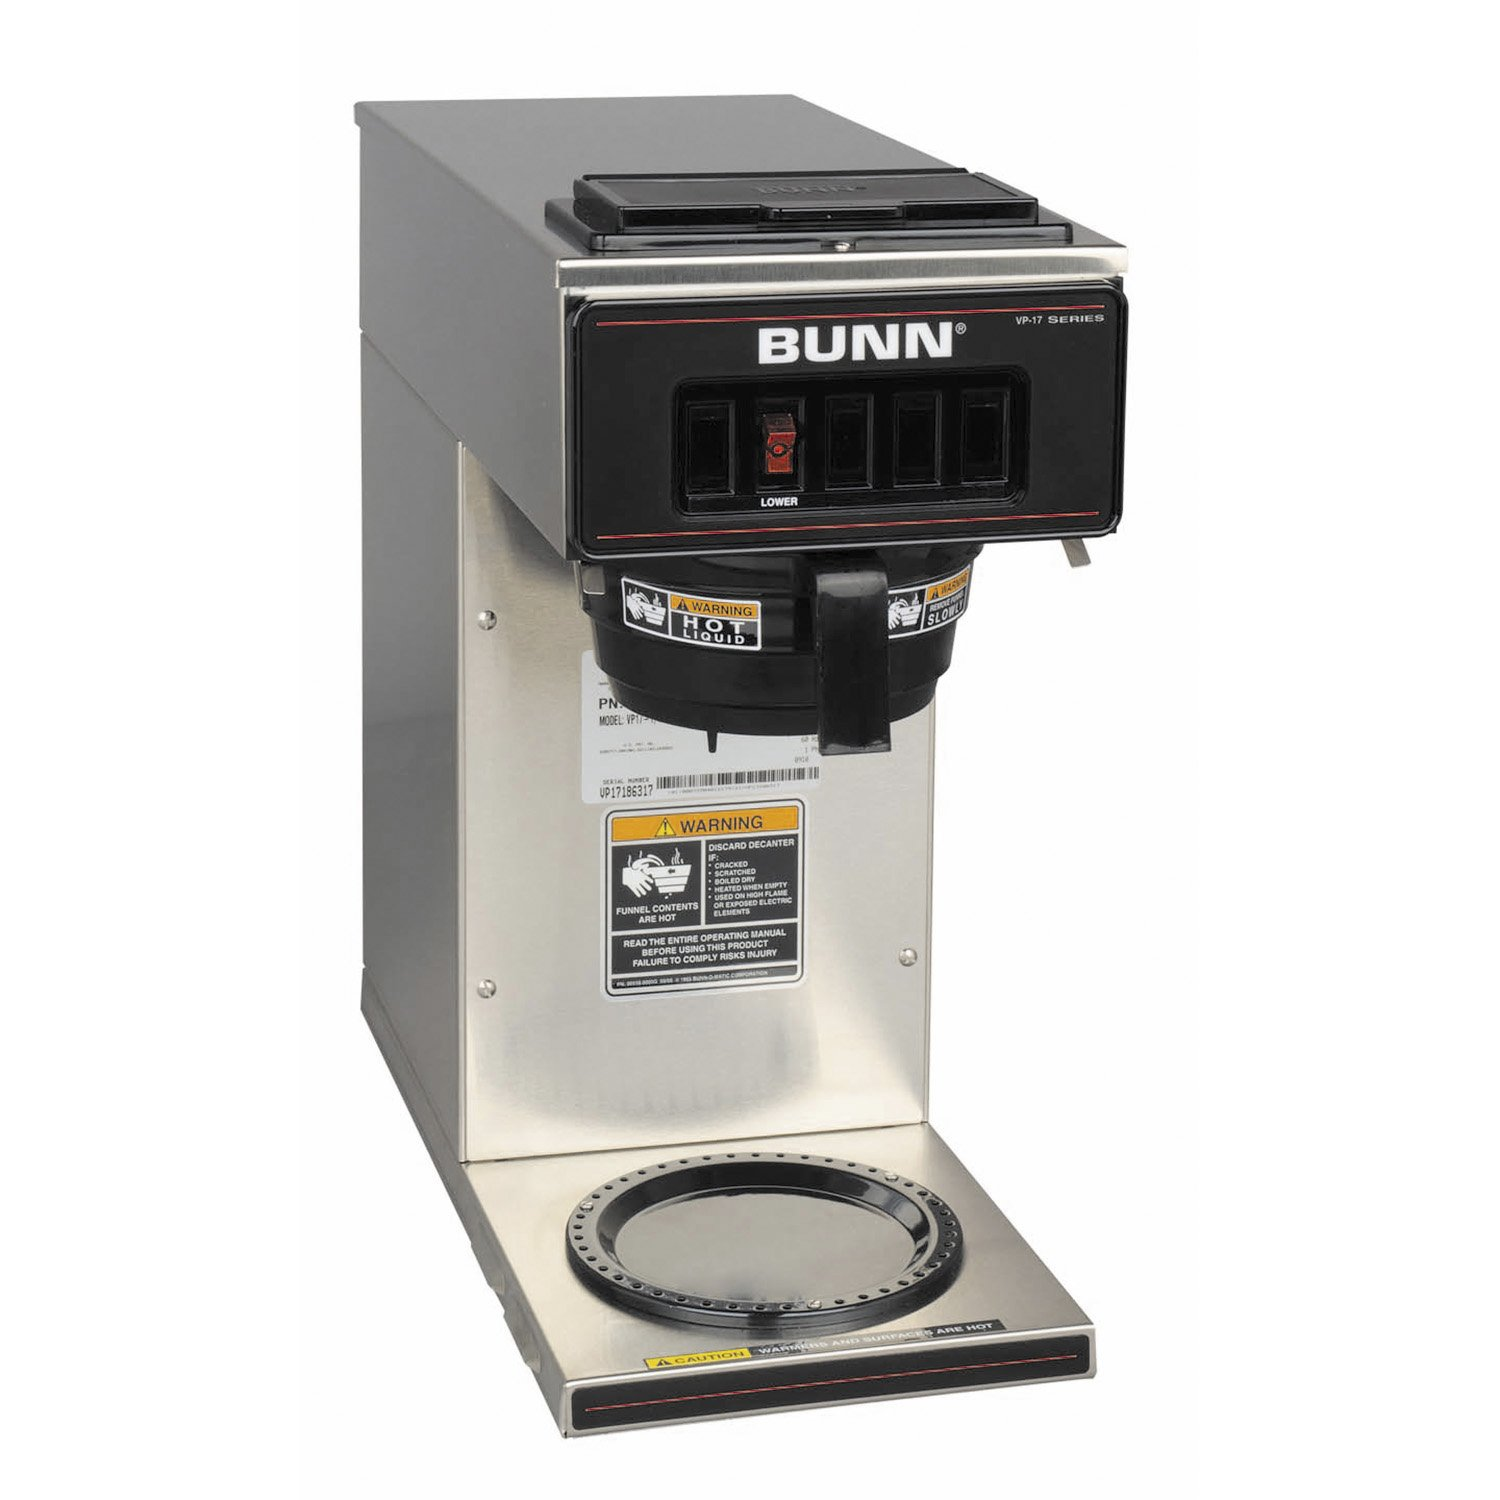 Bunn Coffee Maker Diagram : Bunn Vp 17 2 Blk Wiring Diagrams - Wiring Diagram Schemes